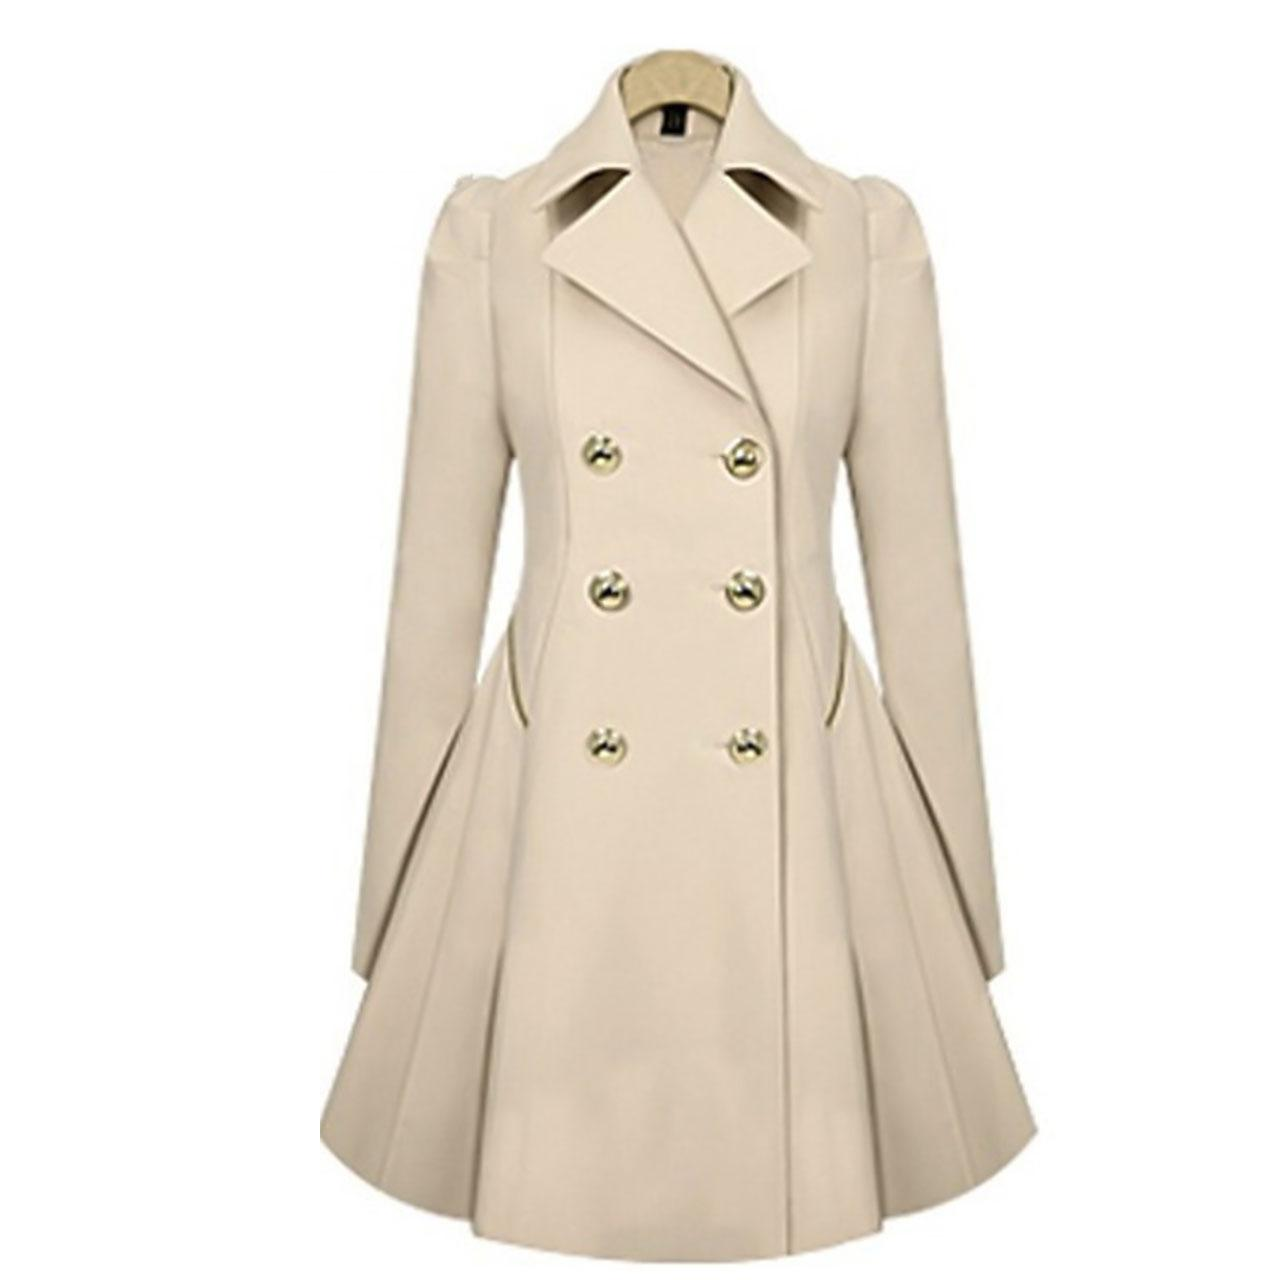 Women's Daily Spring Long Trench Coat, Solid Colored Shirt Collar Long Sleeve Polyester Khaki